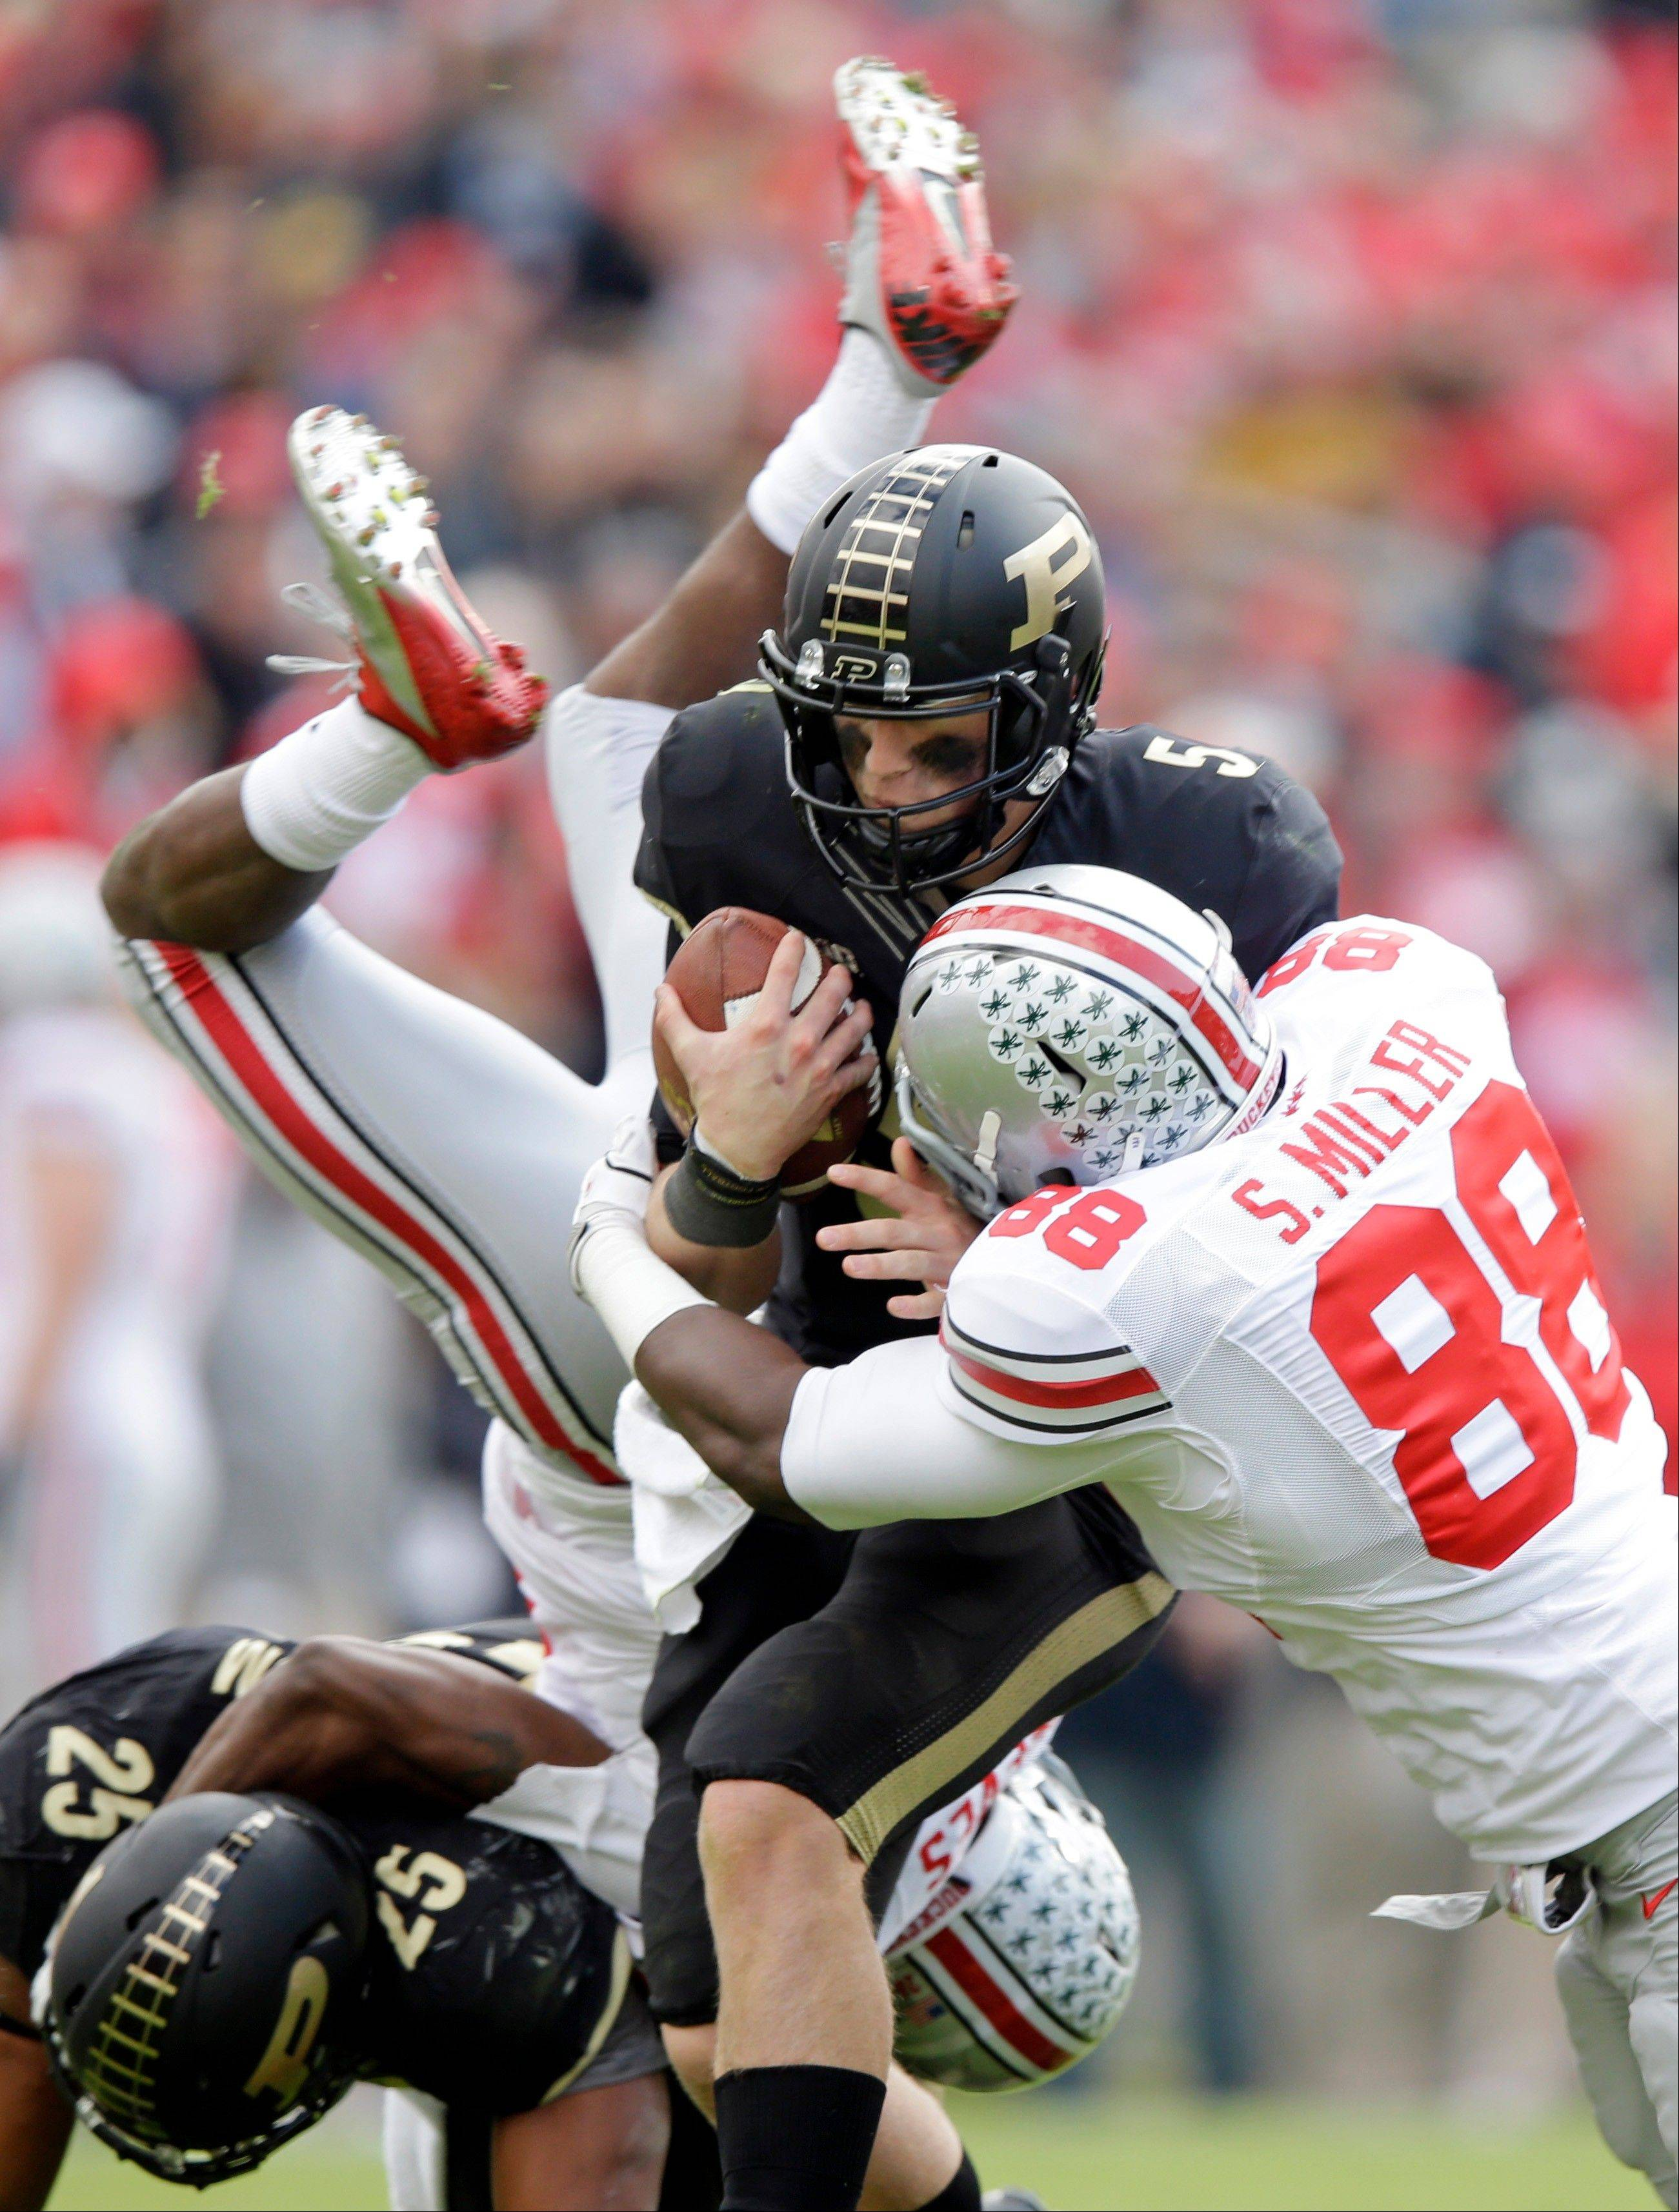 Purdue quarterback Danny Etling is sacked by Ohio State defensive lineman Steve Miller (88) as Ohio State cornerback Armani Reeves flips over Purdue running back Brandon Cottom during the second half Saturday in West Lafayette, Ind.